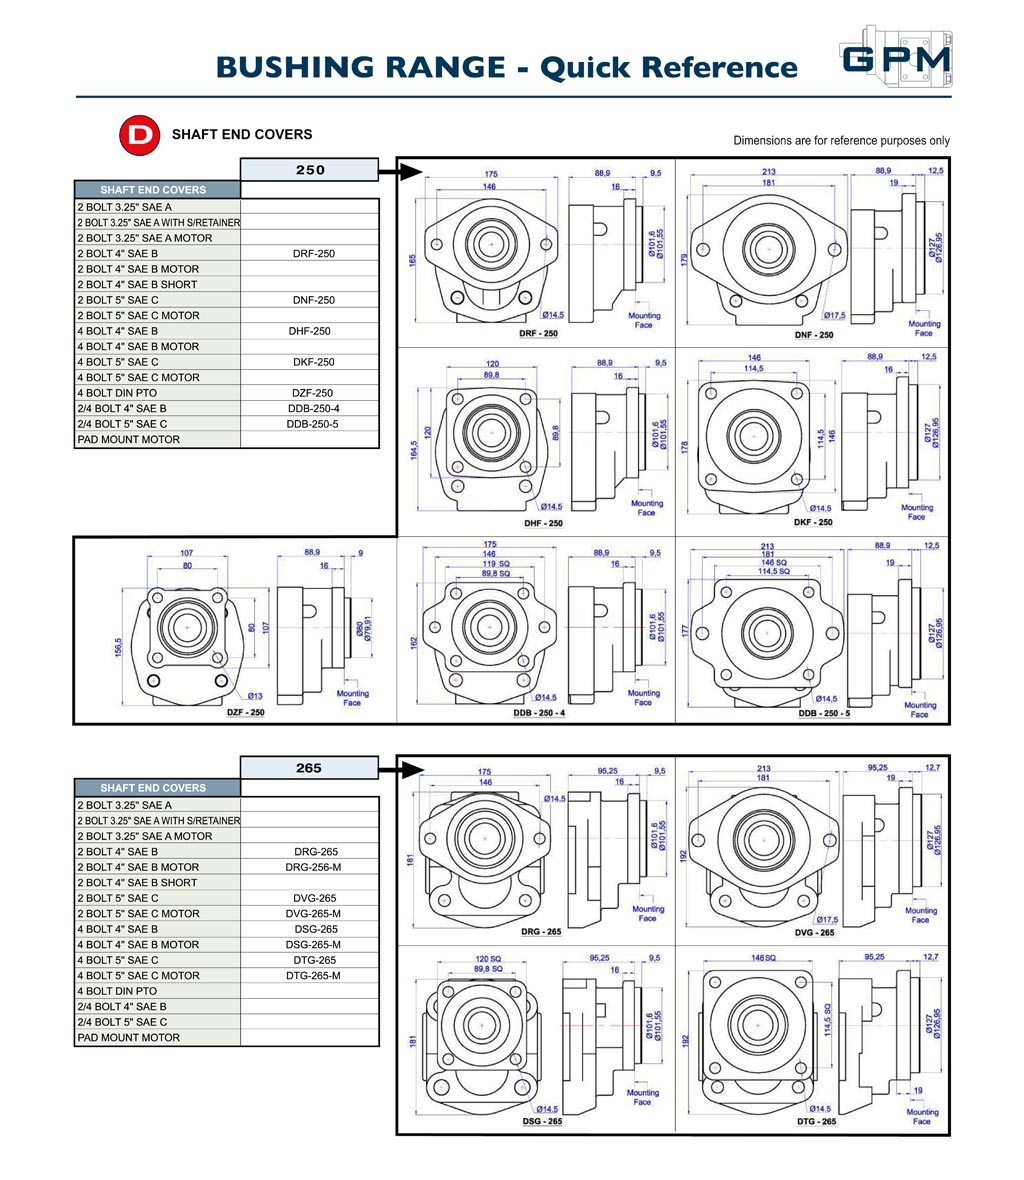 GPM Bushing Pumps Quick Reference D2